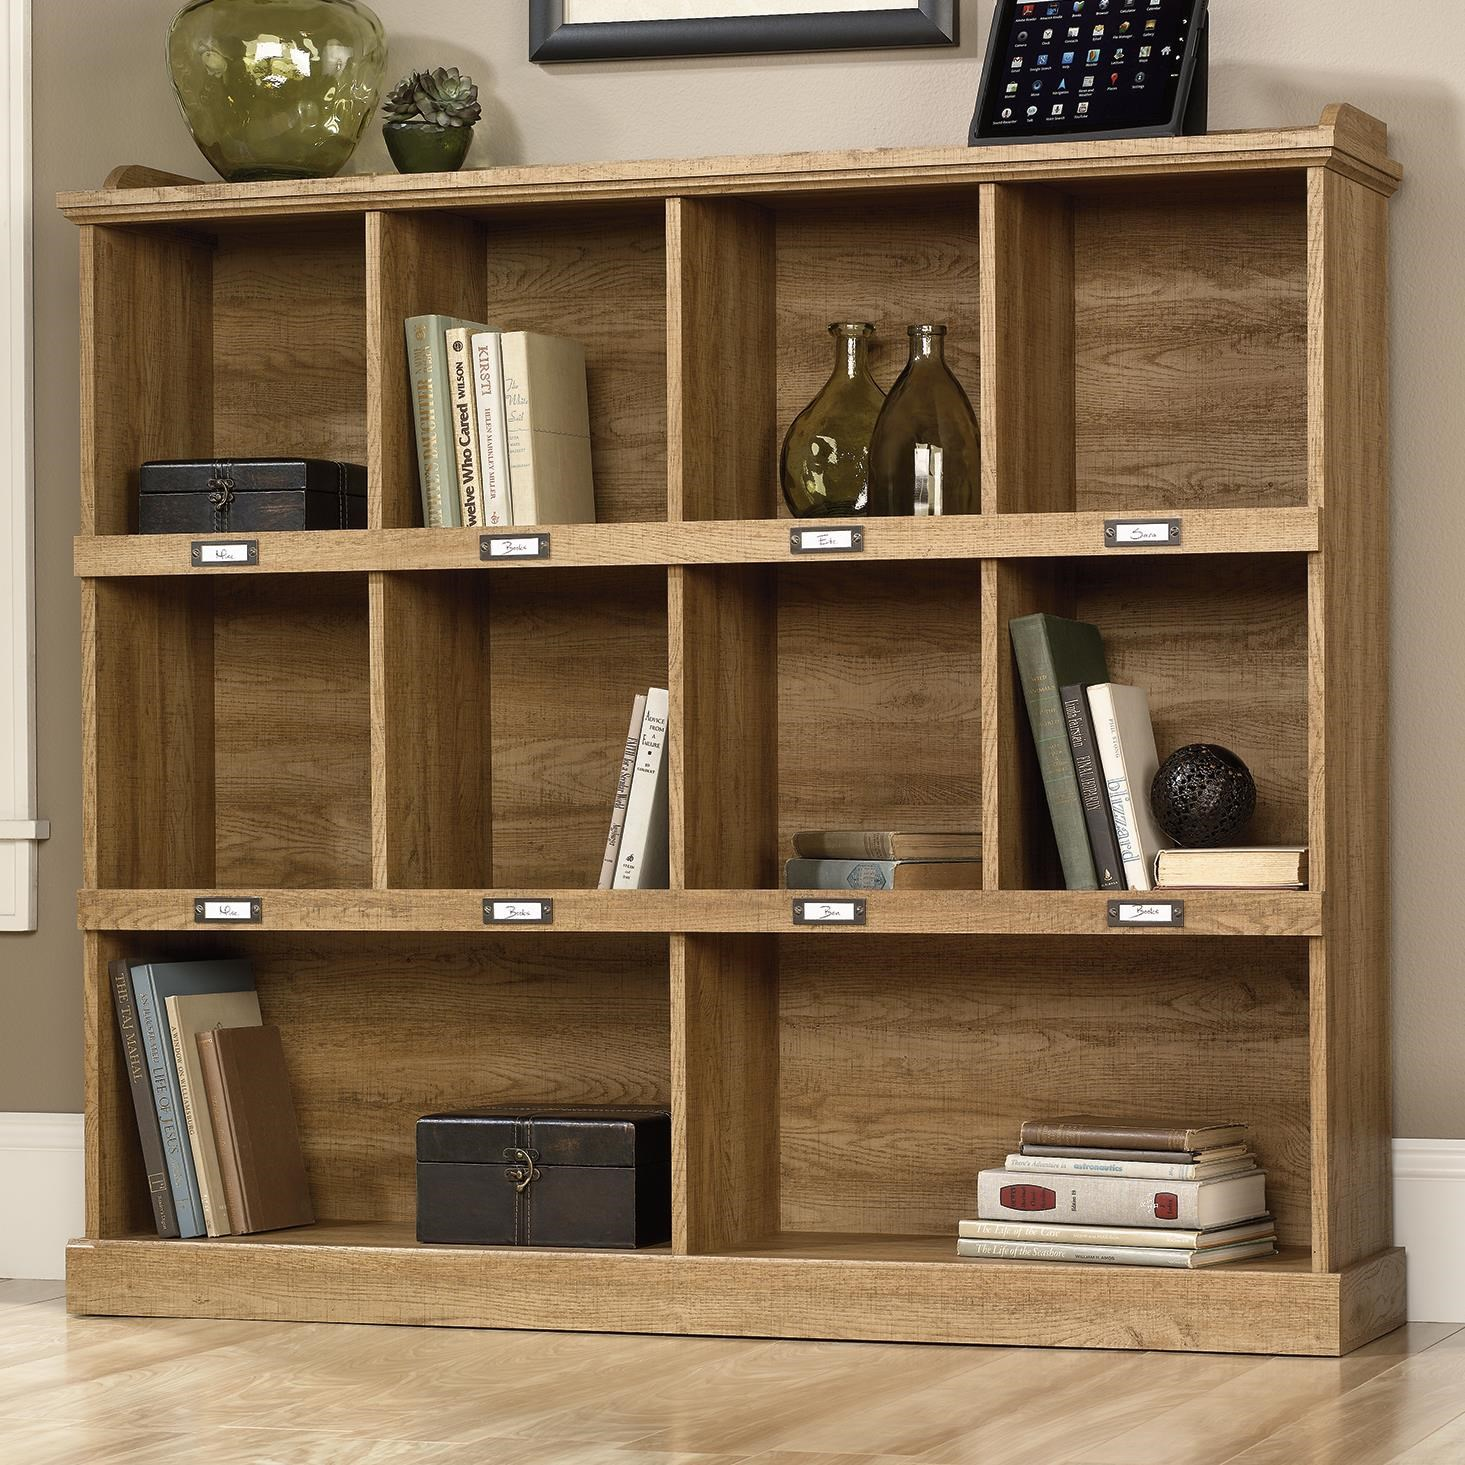 Sauder Barrister Lane Bookcase With Cubbyhole Storage And